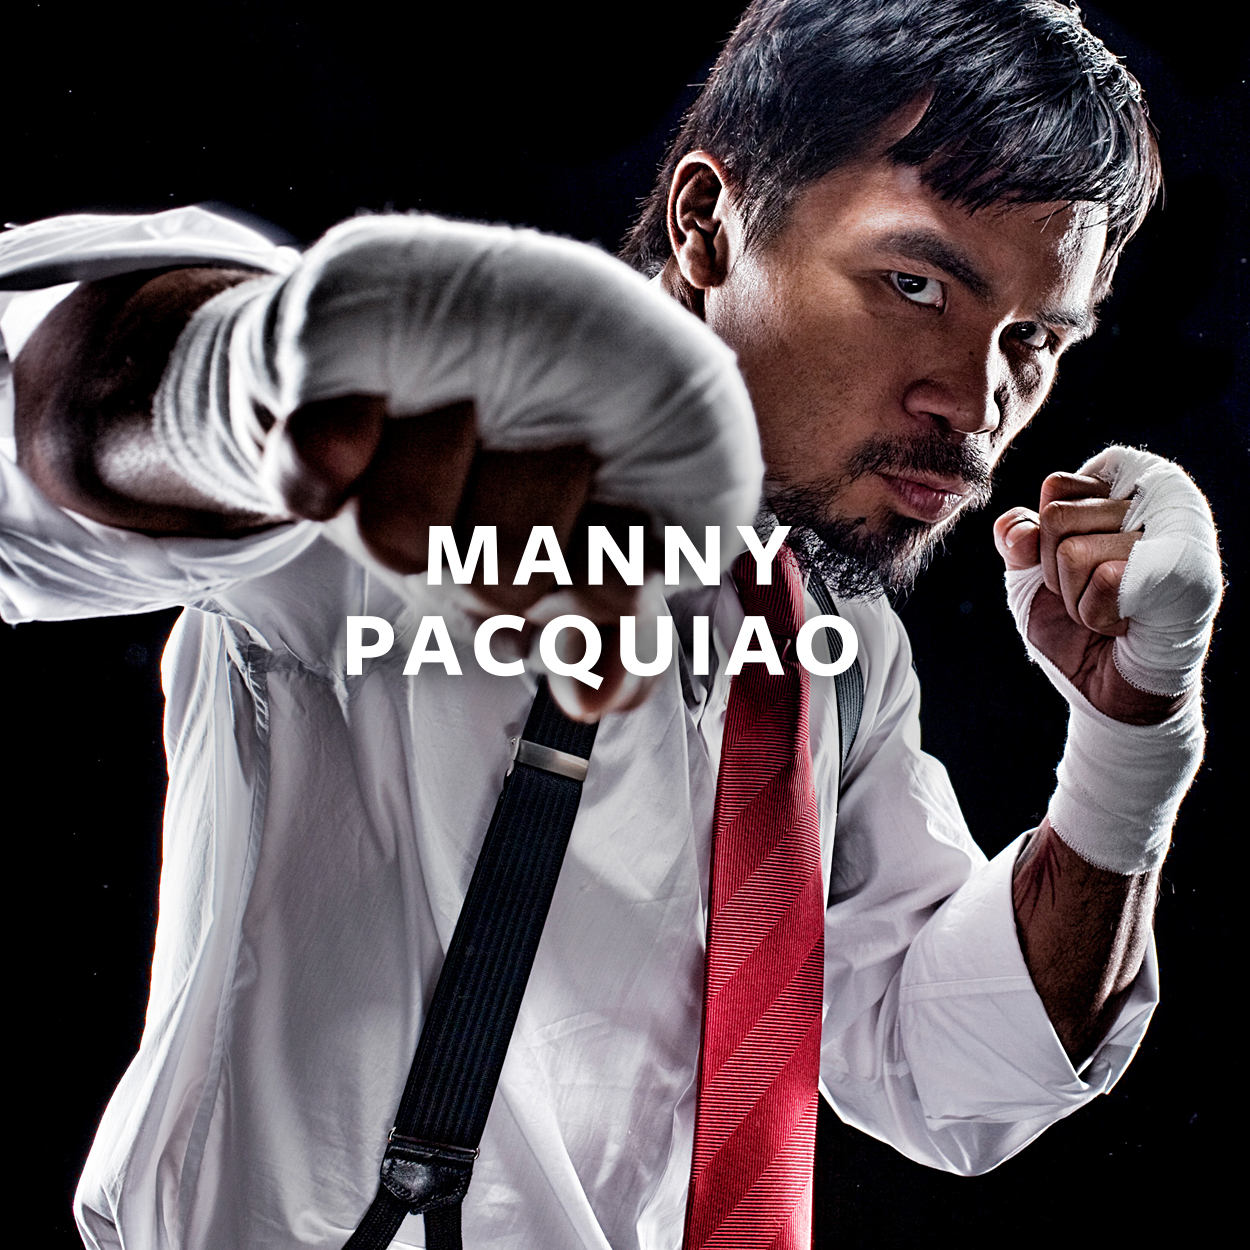 20100221_Pacquiao_9672_frontpage.jpg